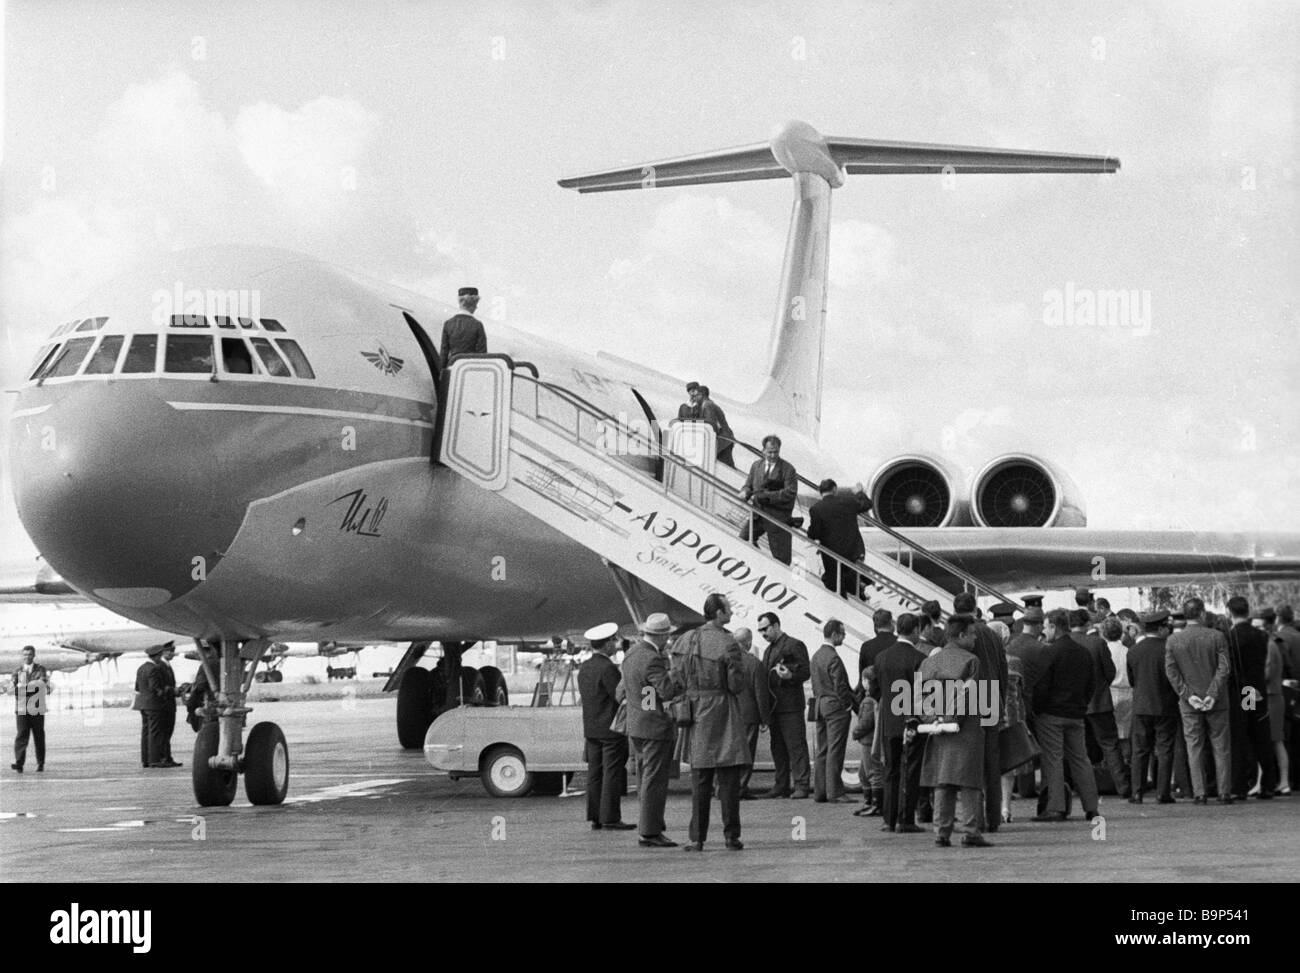 Passengers boarding an IL 62 plane at Sheremetyevo airport - Stock Image